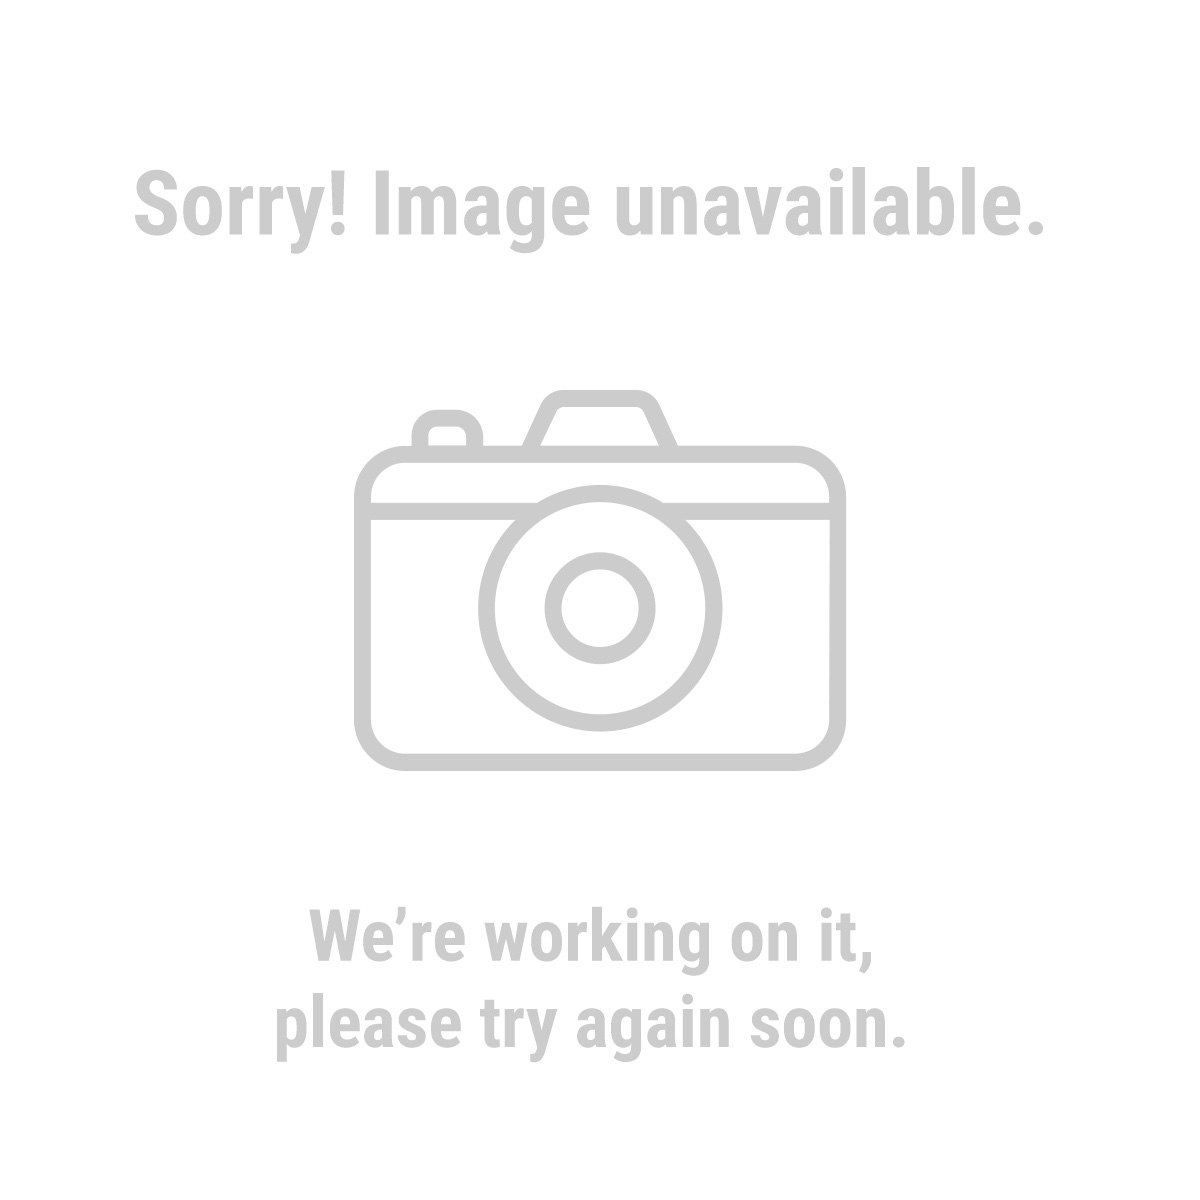 HFT 67227 27 LED Portable Worklight/Flashlight